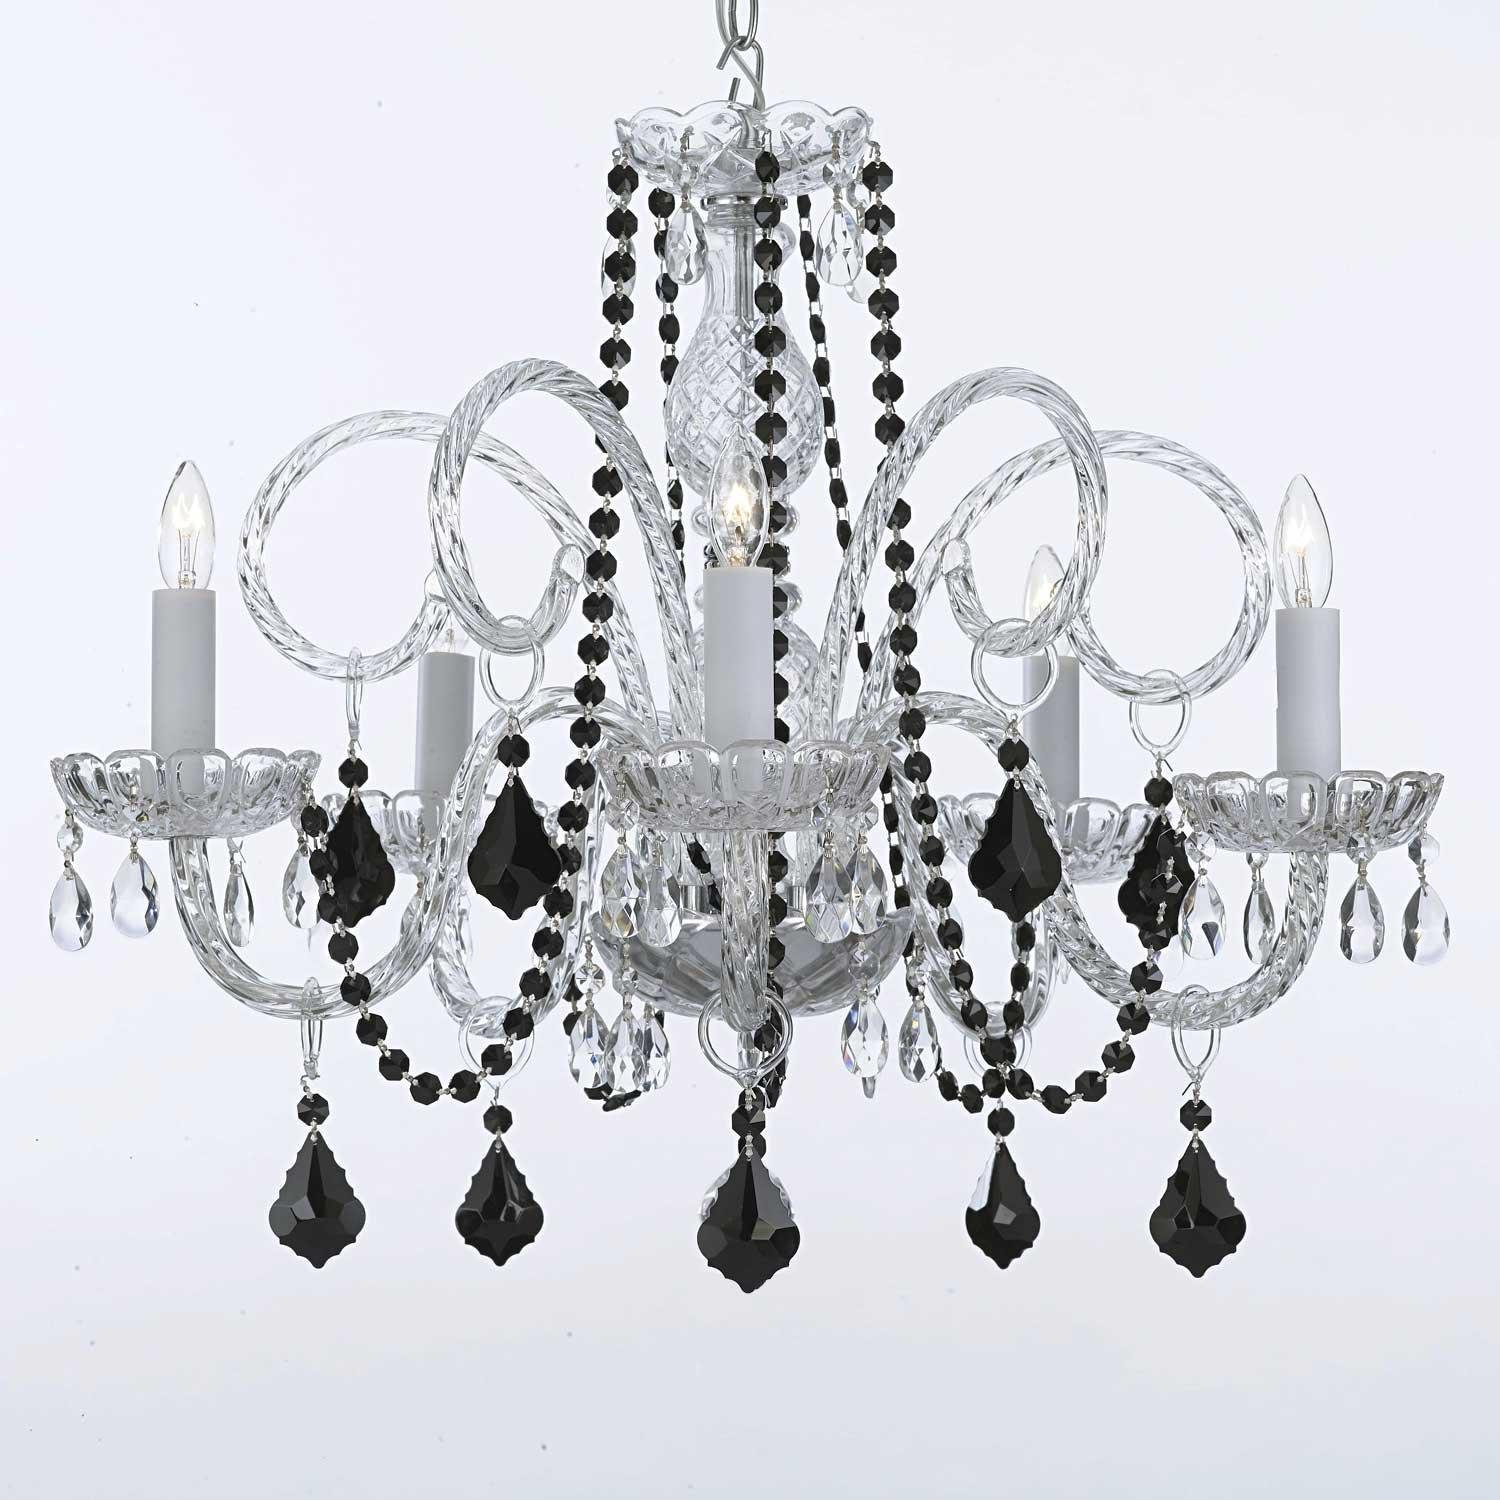 Venetian Style All Crystal Chandelier Lighting With Black Crystal